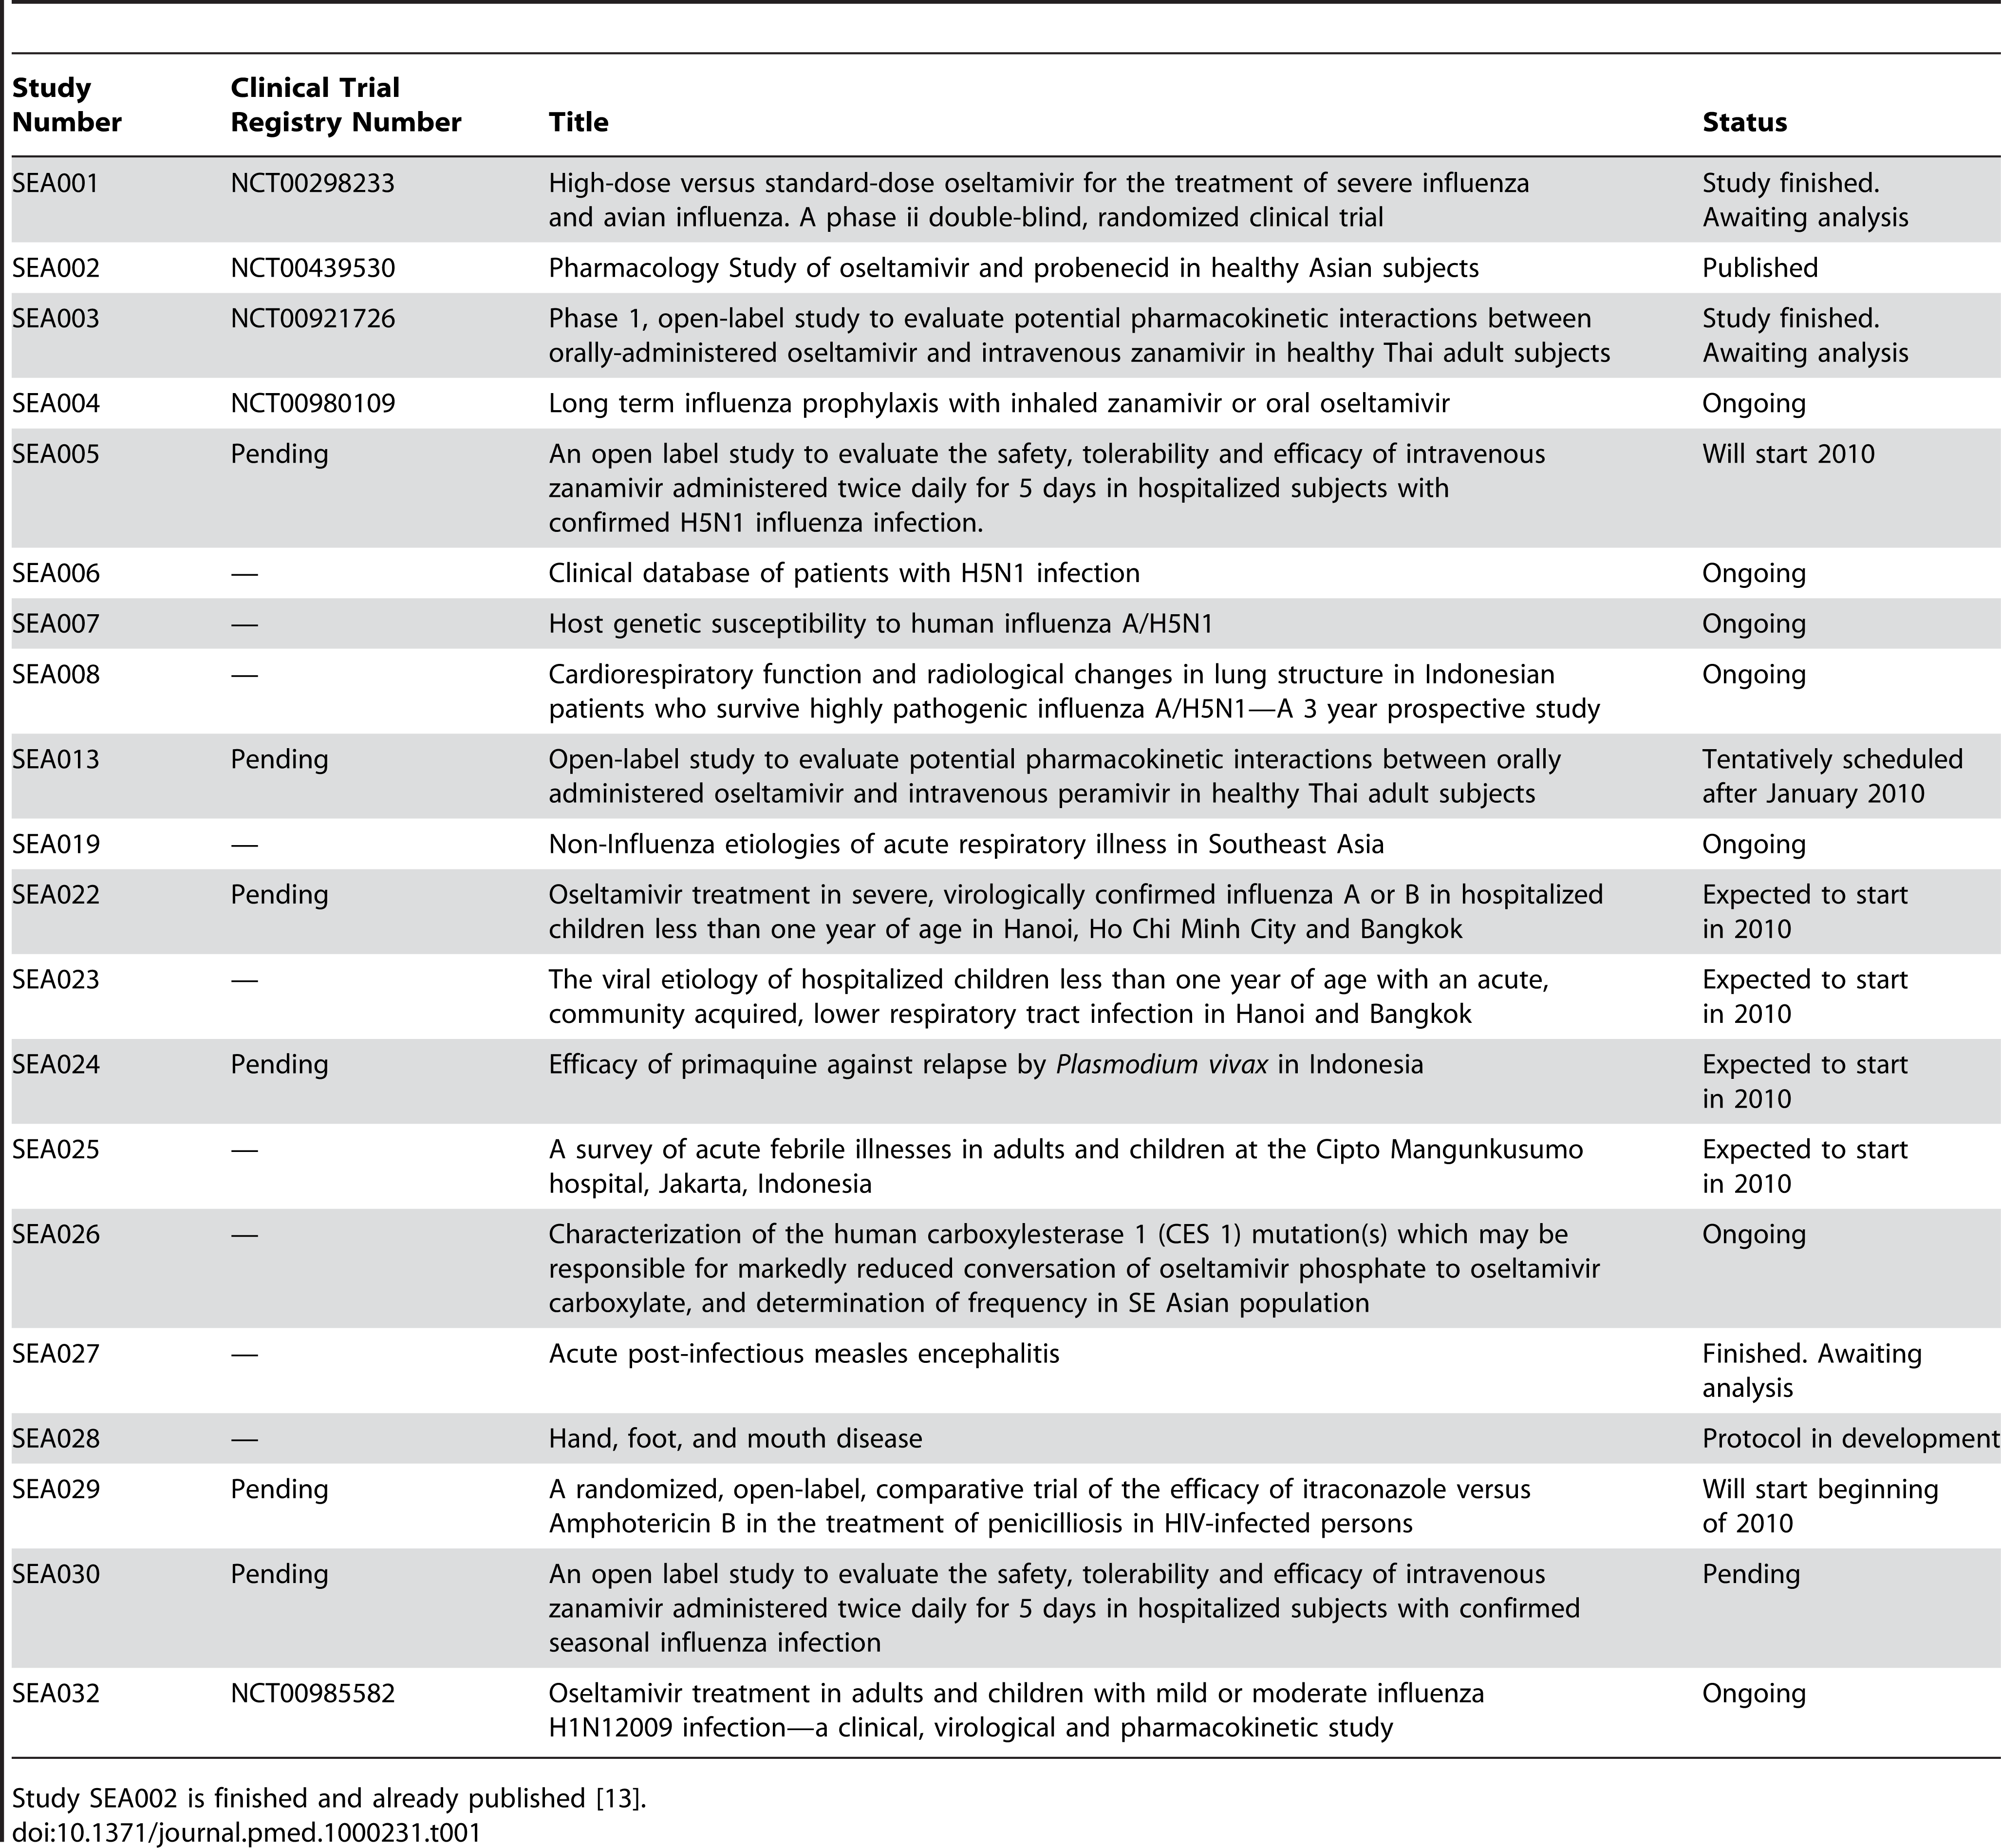 List of approved protocols that will be or are being executed by SEAICRN.